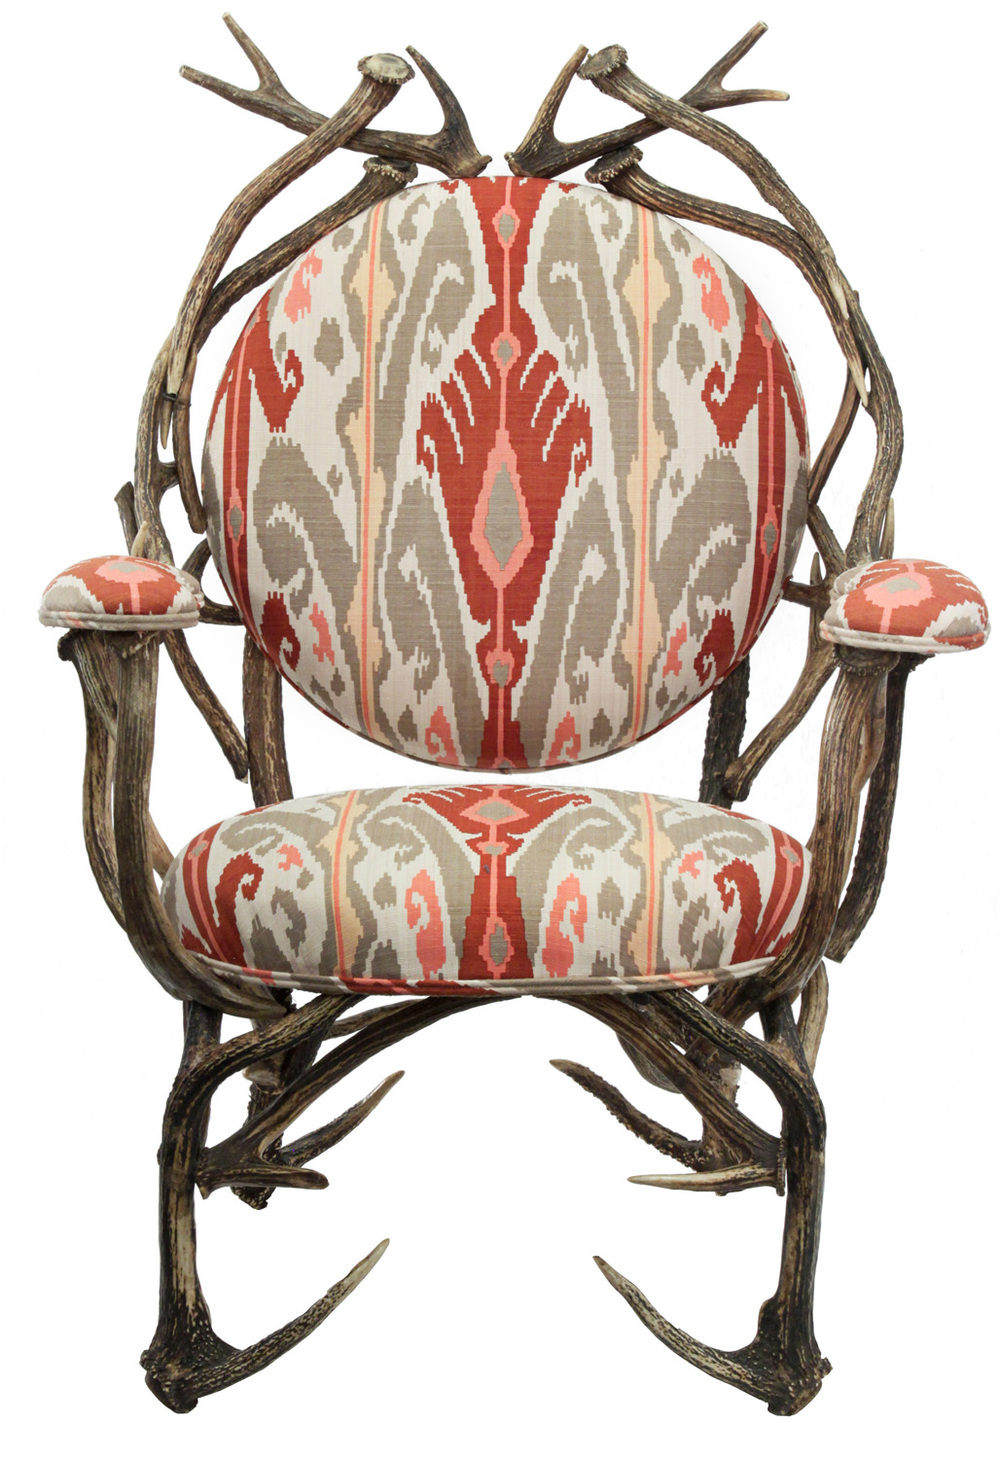 70's 75 antlers red fabric loungechairs145 detail7 hires.jpg